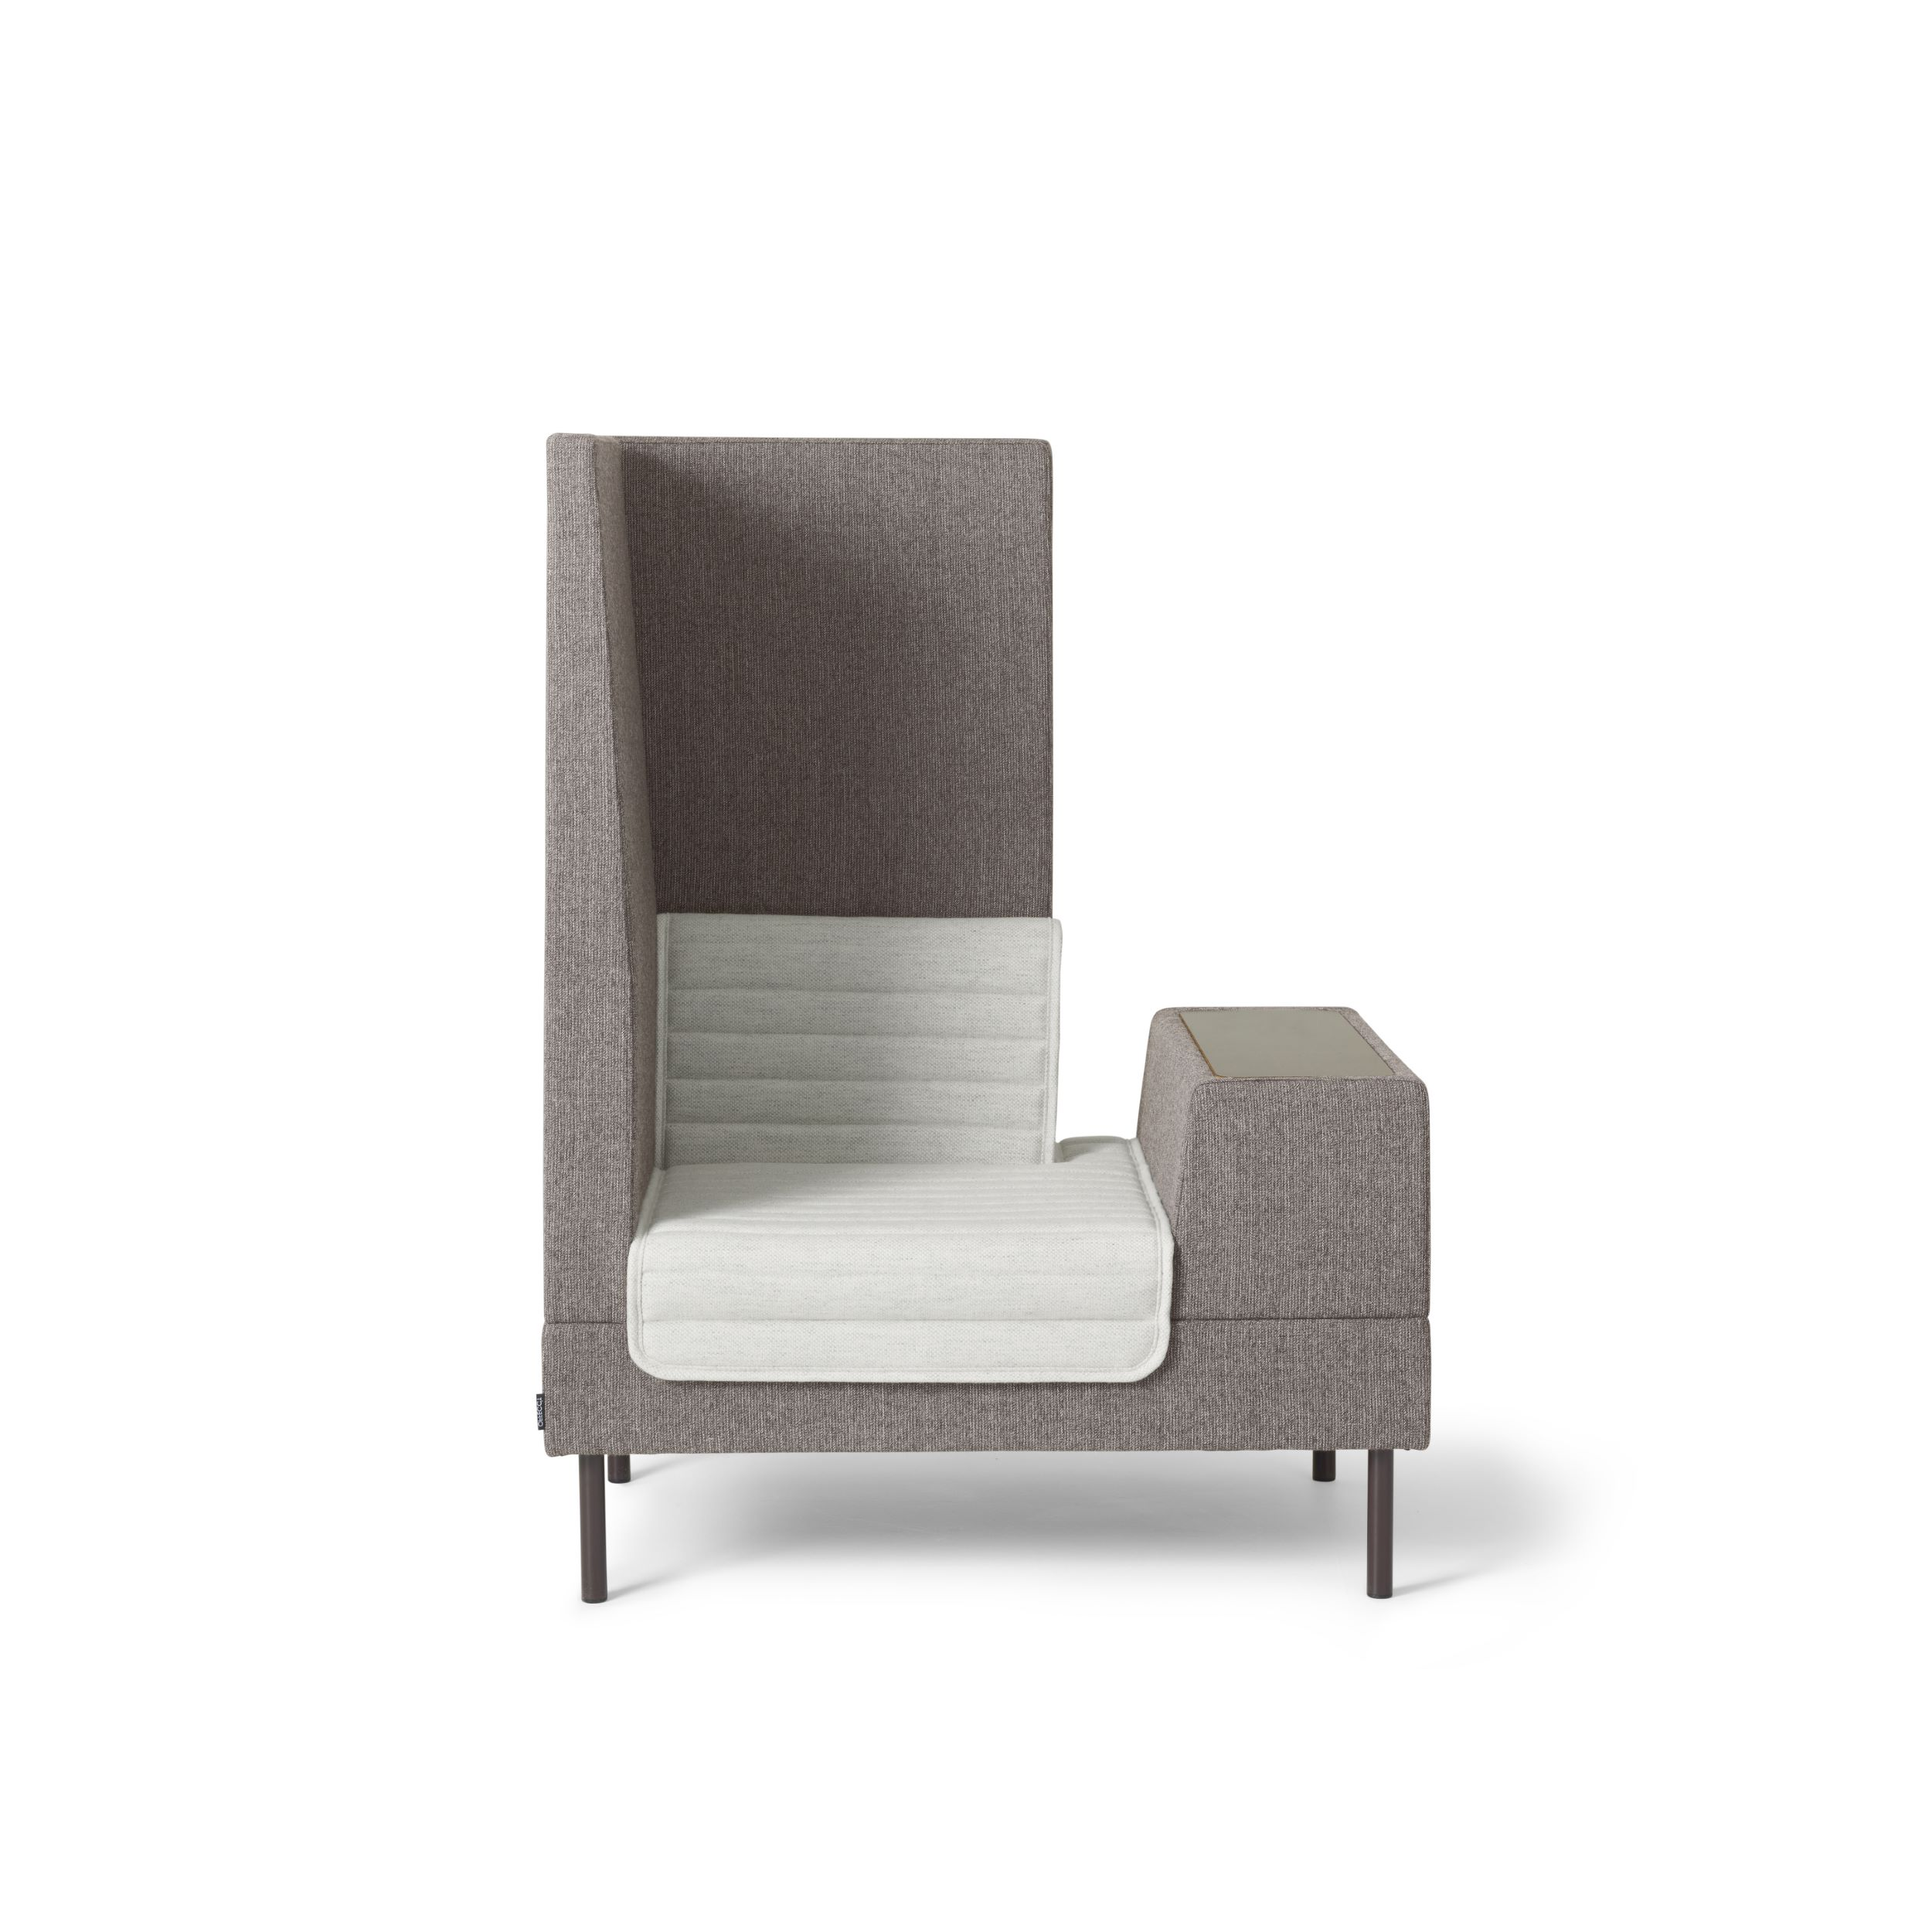 Smallroom Plus 1000  Easy chair with divider  Ineke